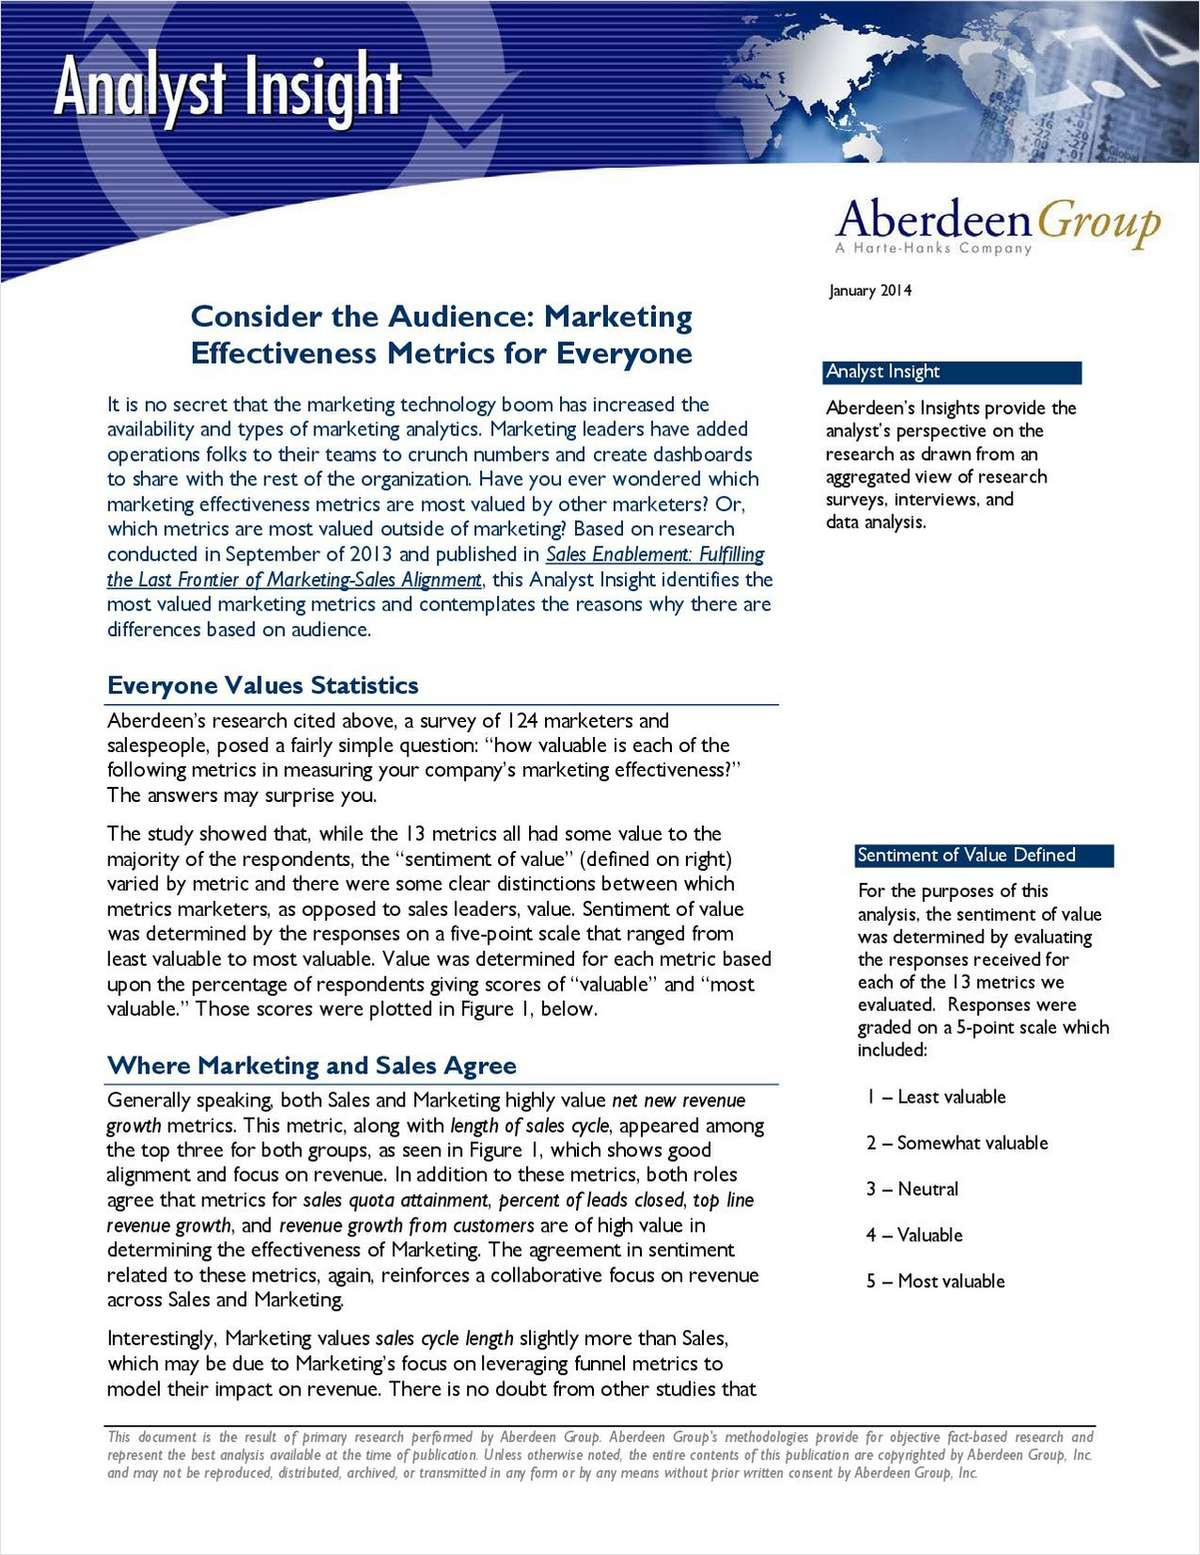 Consider the Audience: Marketing Effectiveness Metrics for Everyone